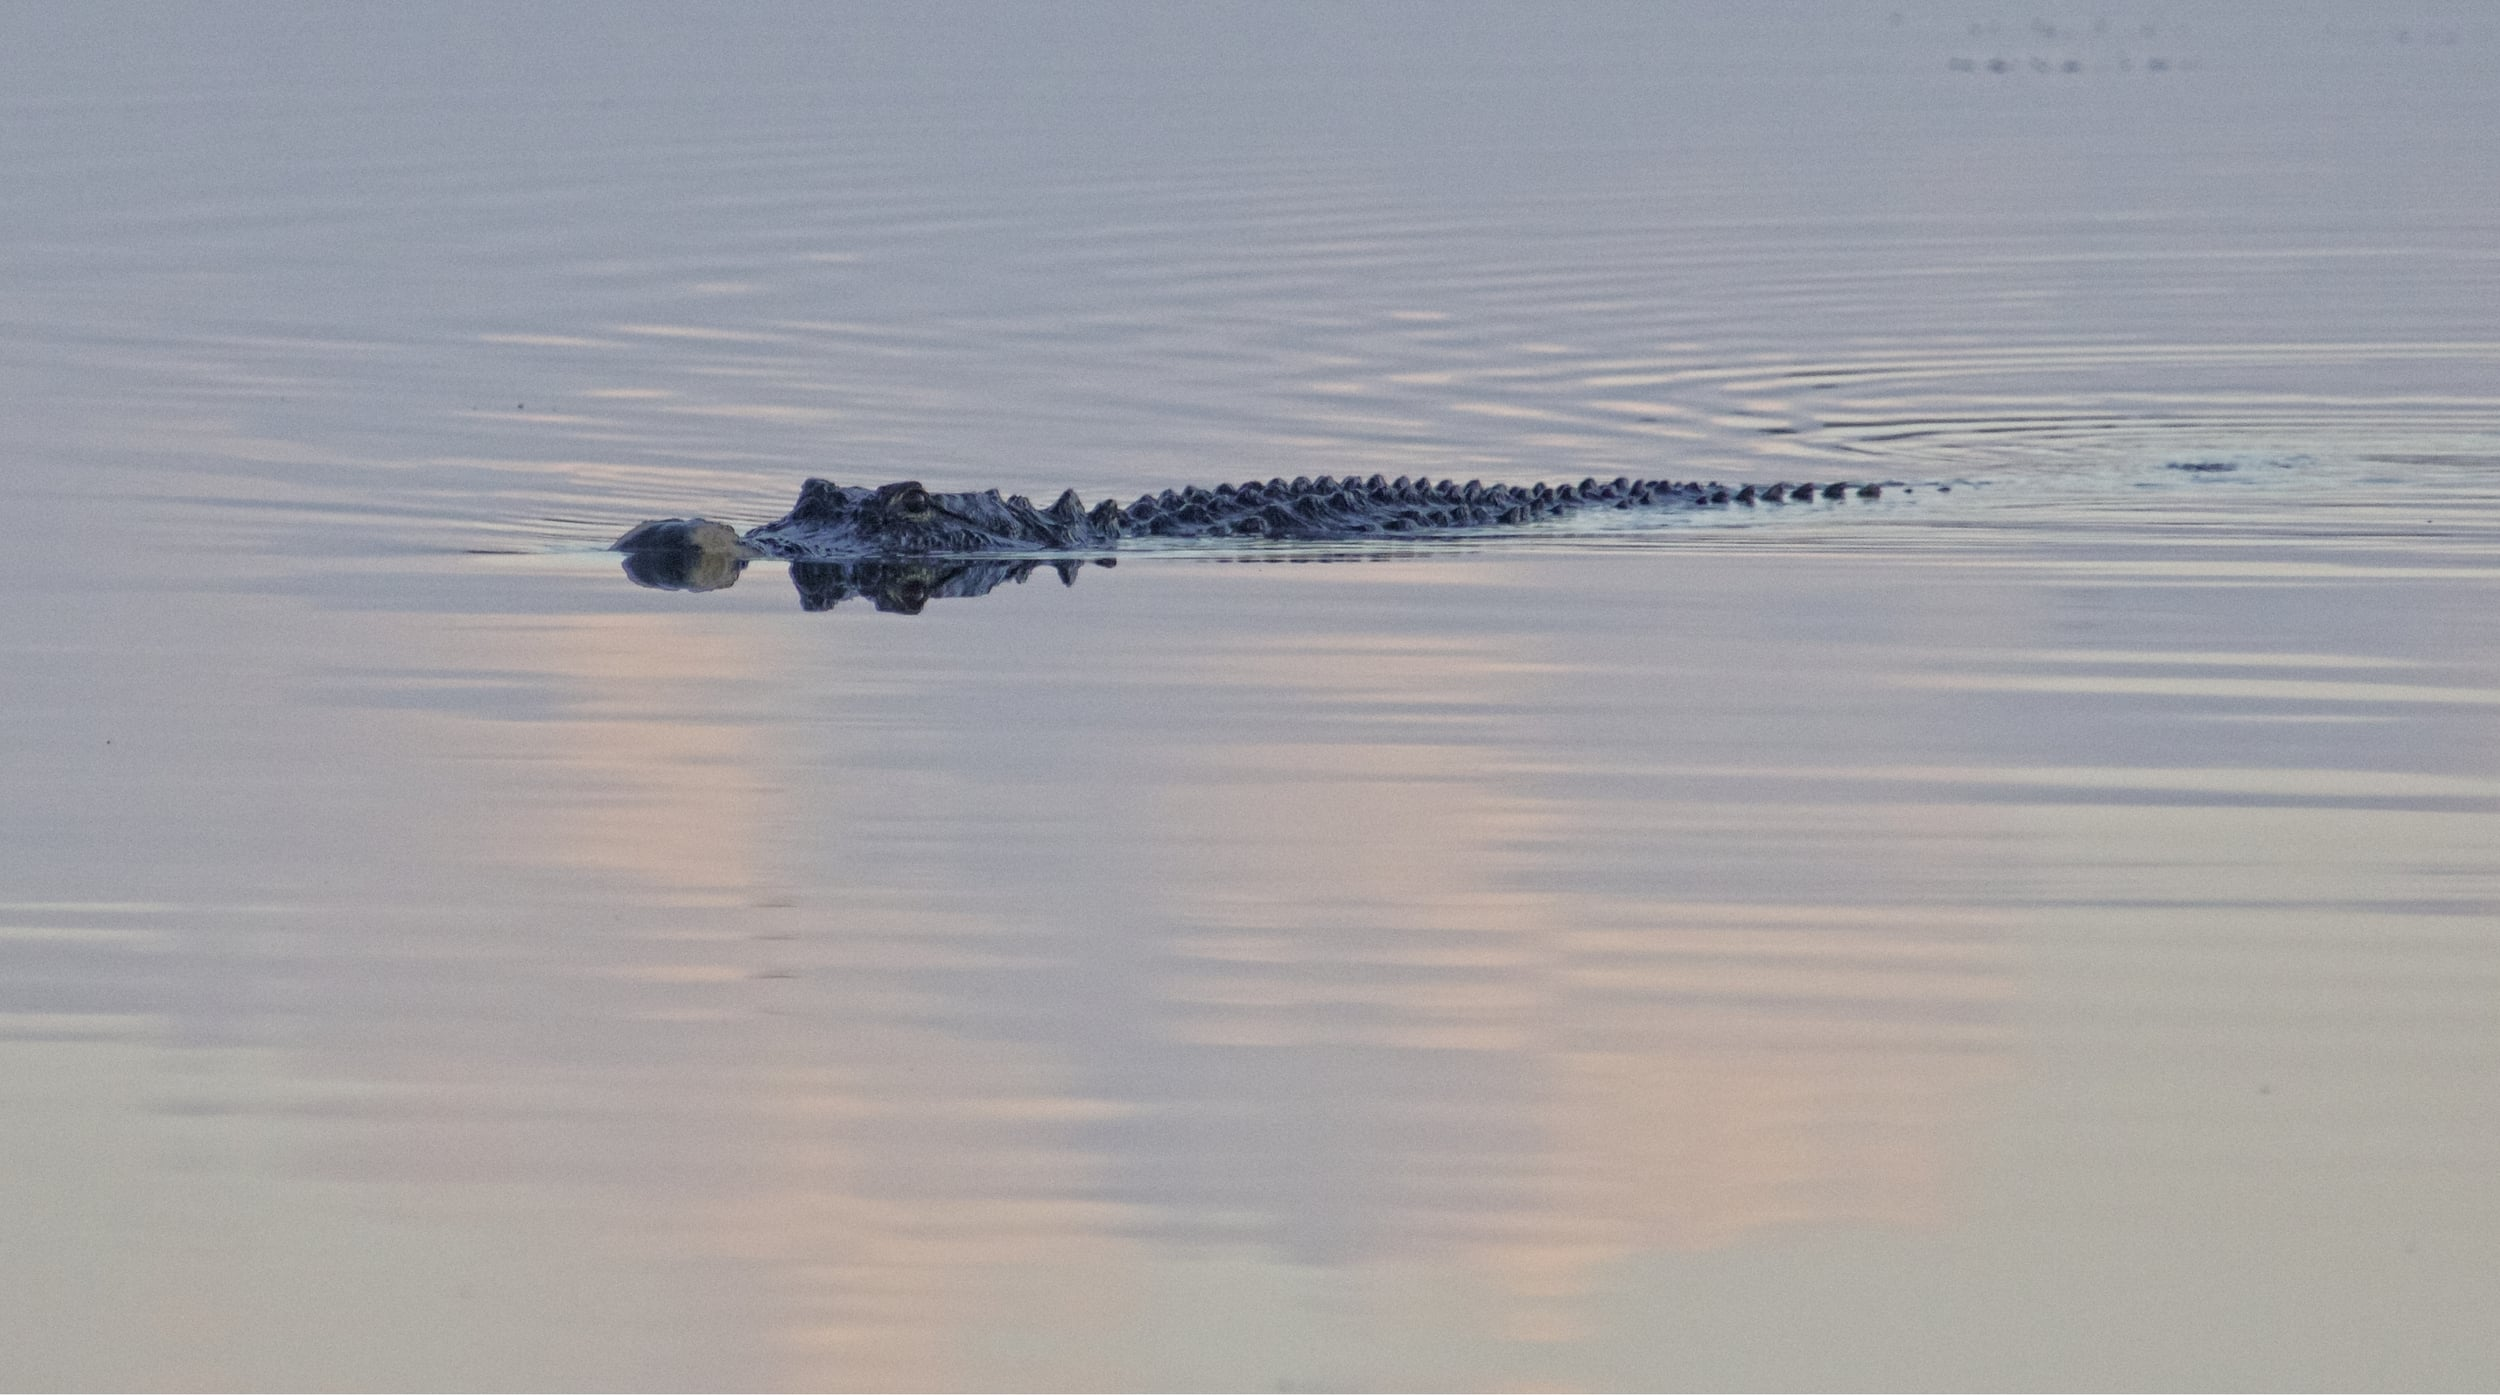 An enormous alligator glides silently across the pond..